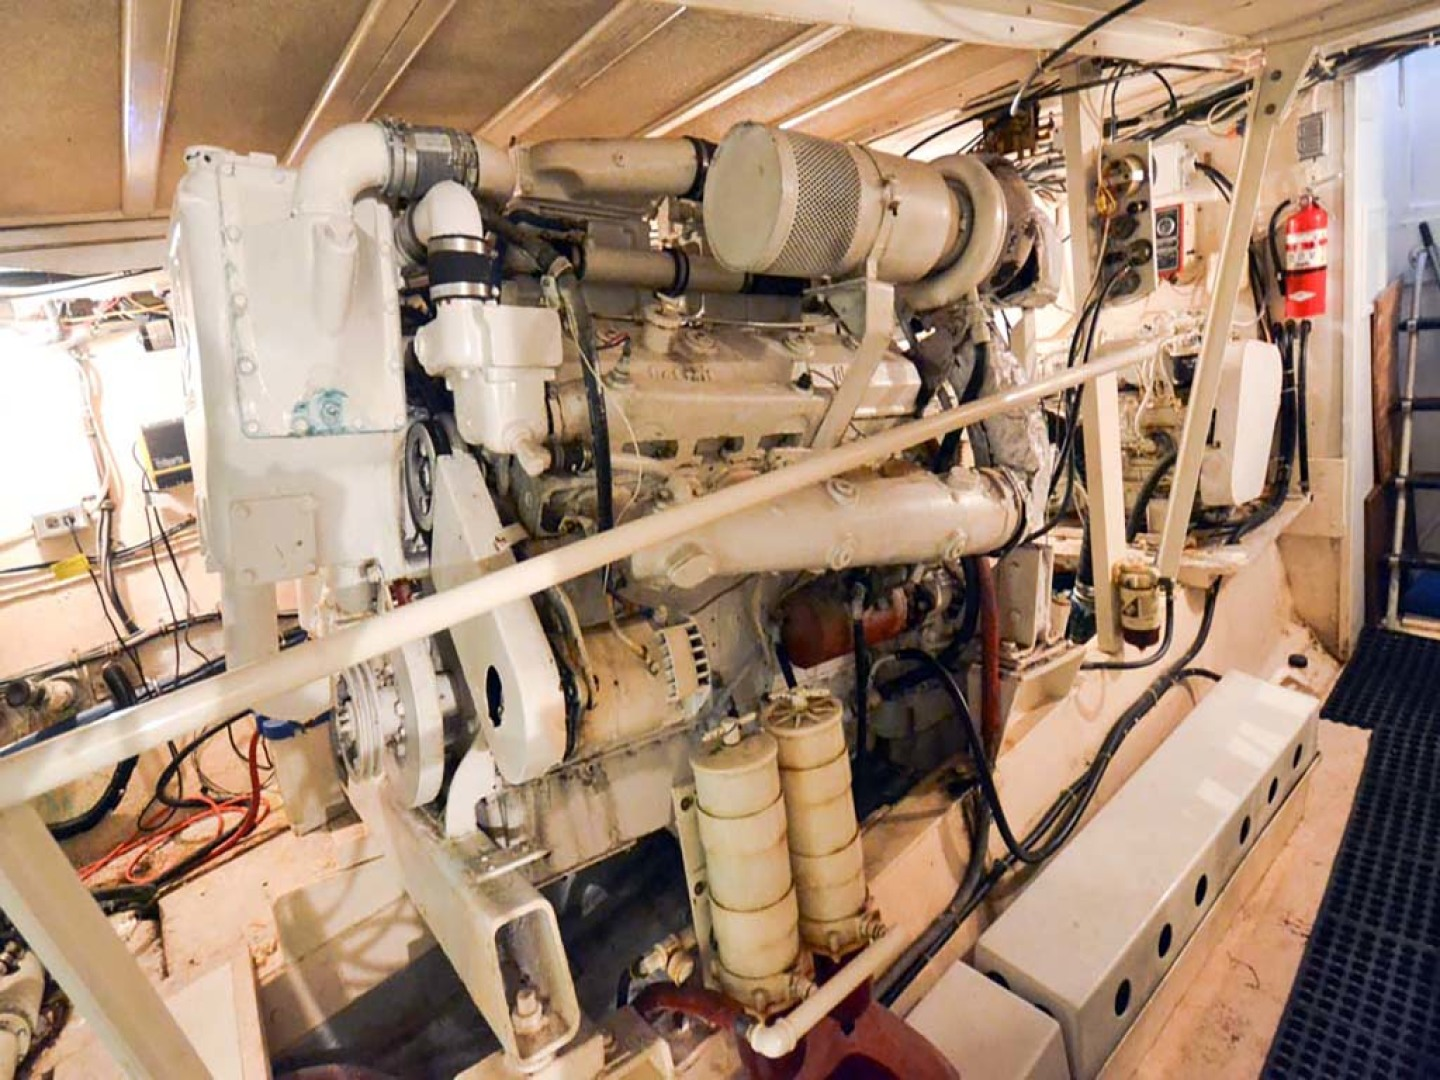 Hatteras-60 Flybridge 1979-Sea Horse Daytona Beach-Florida-United States-Starboard Engine-1070909 | Thumbnail